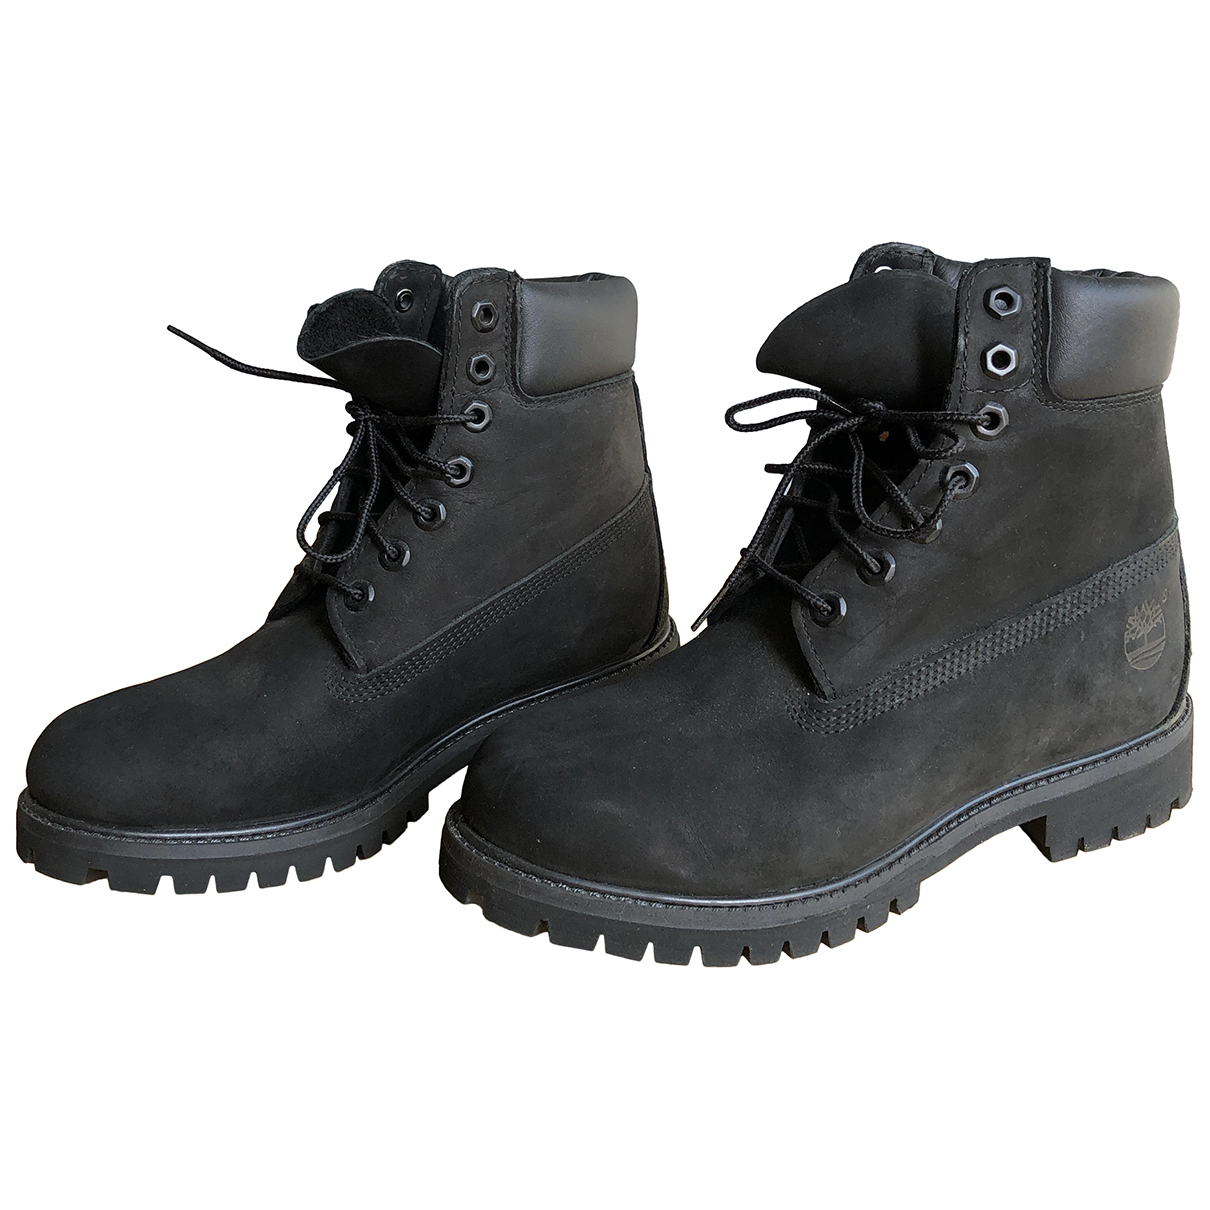 Timberland N Black Suede Boots for Men 7 UK